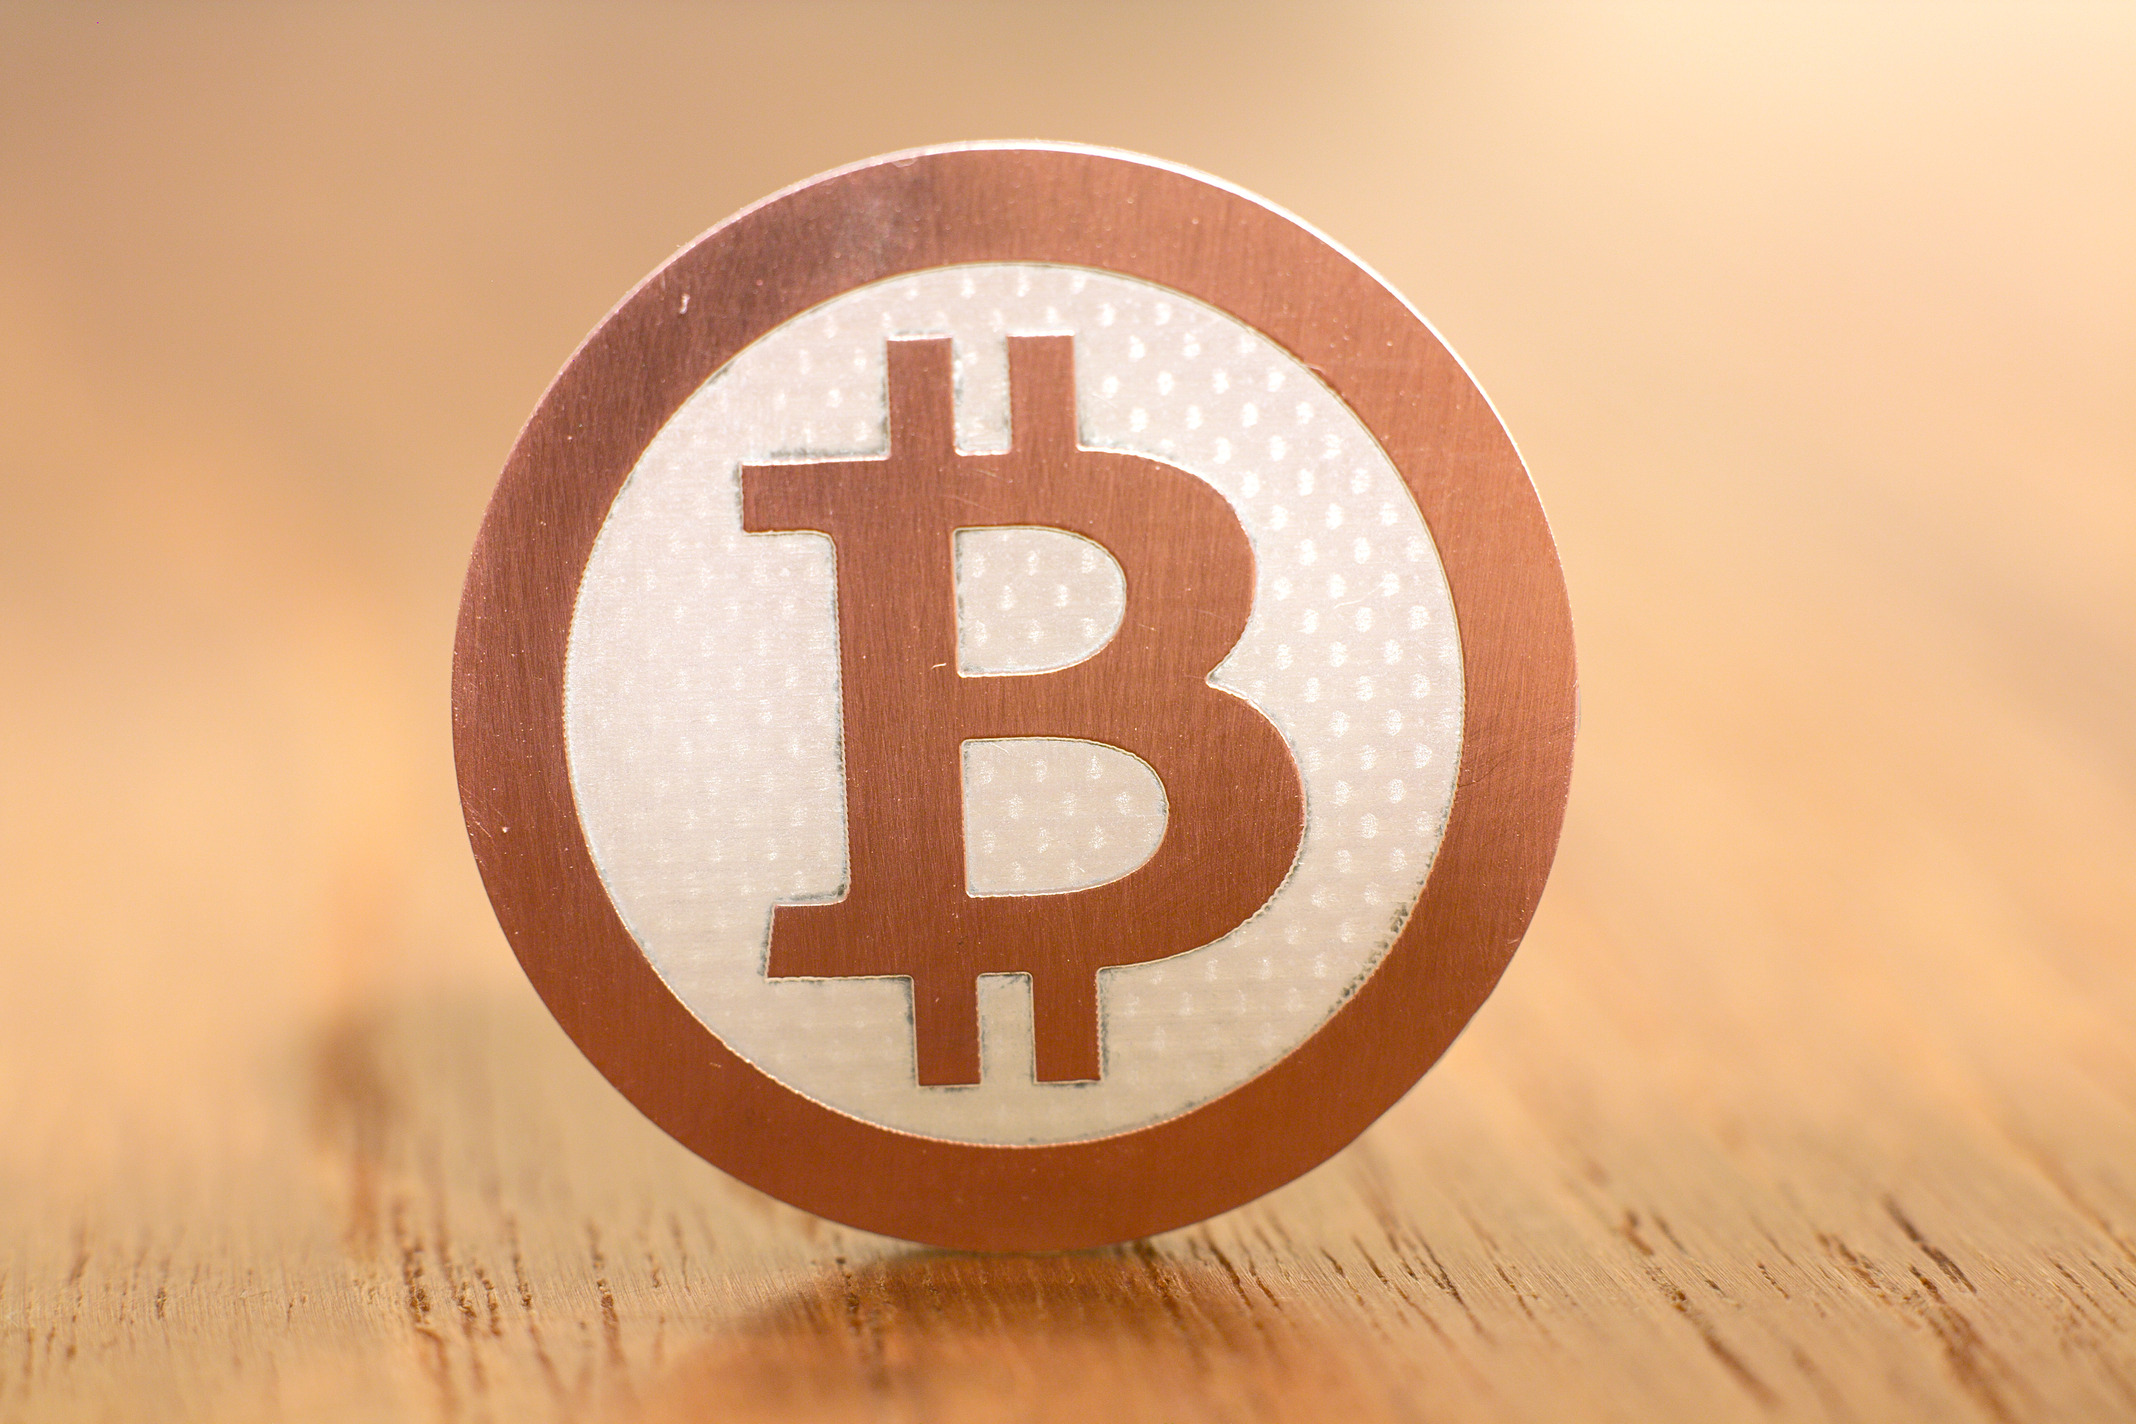 Bitcoin payments go mobile with Bitcoin for Android